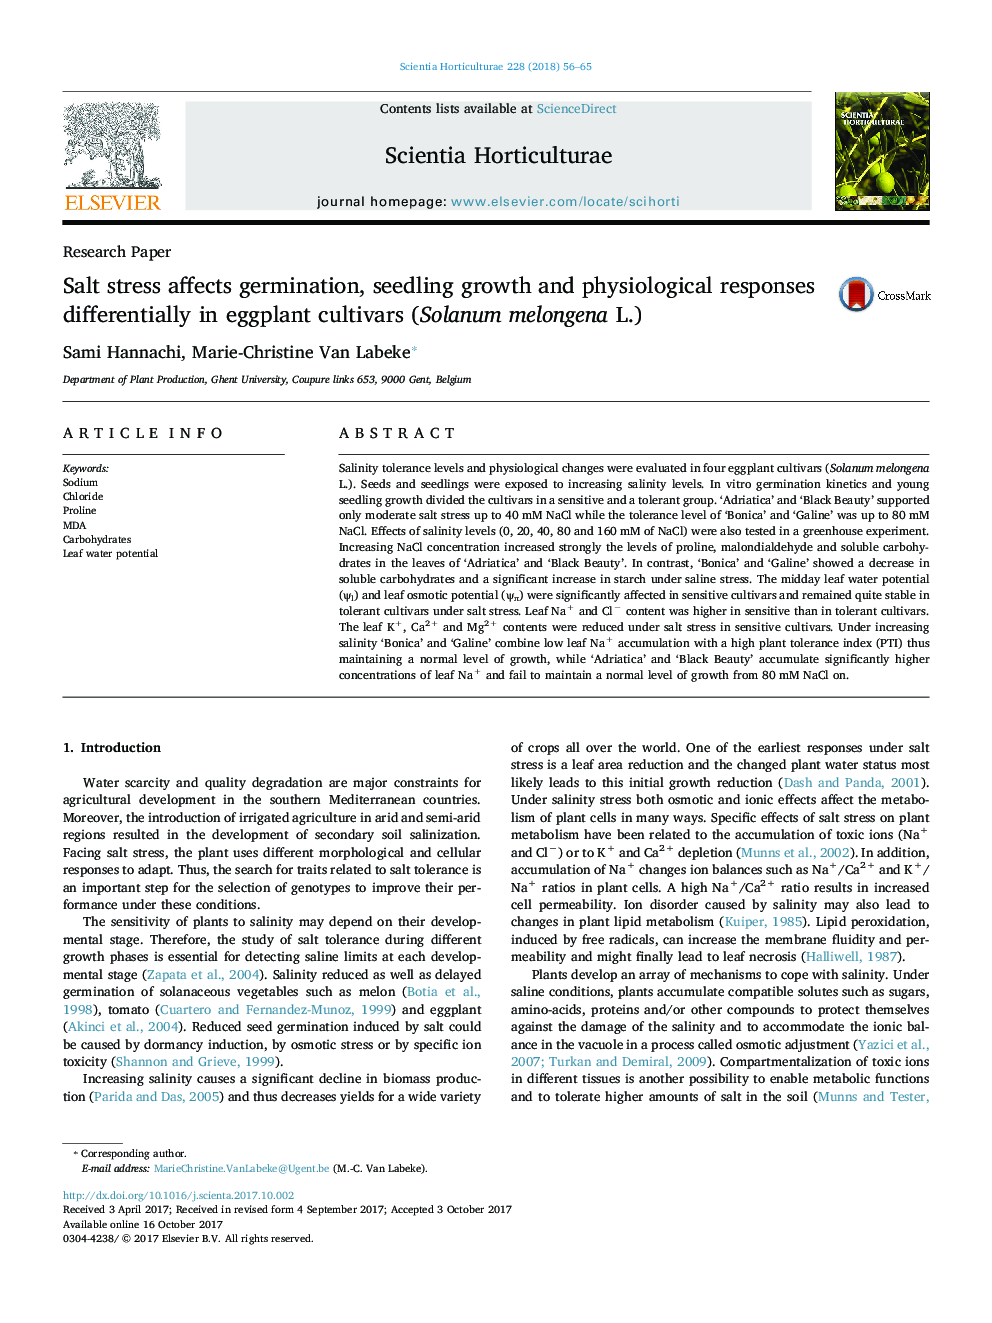 Research PaperSalt stress affects germination, seedling growth and physiological responses differentially in eggplant cultivars (Solanum melongena L.)